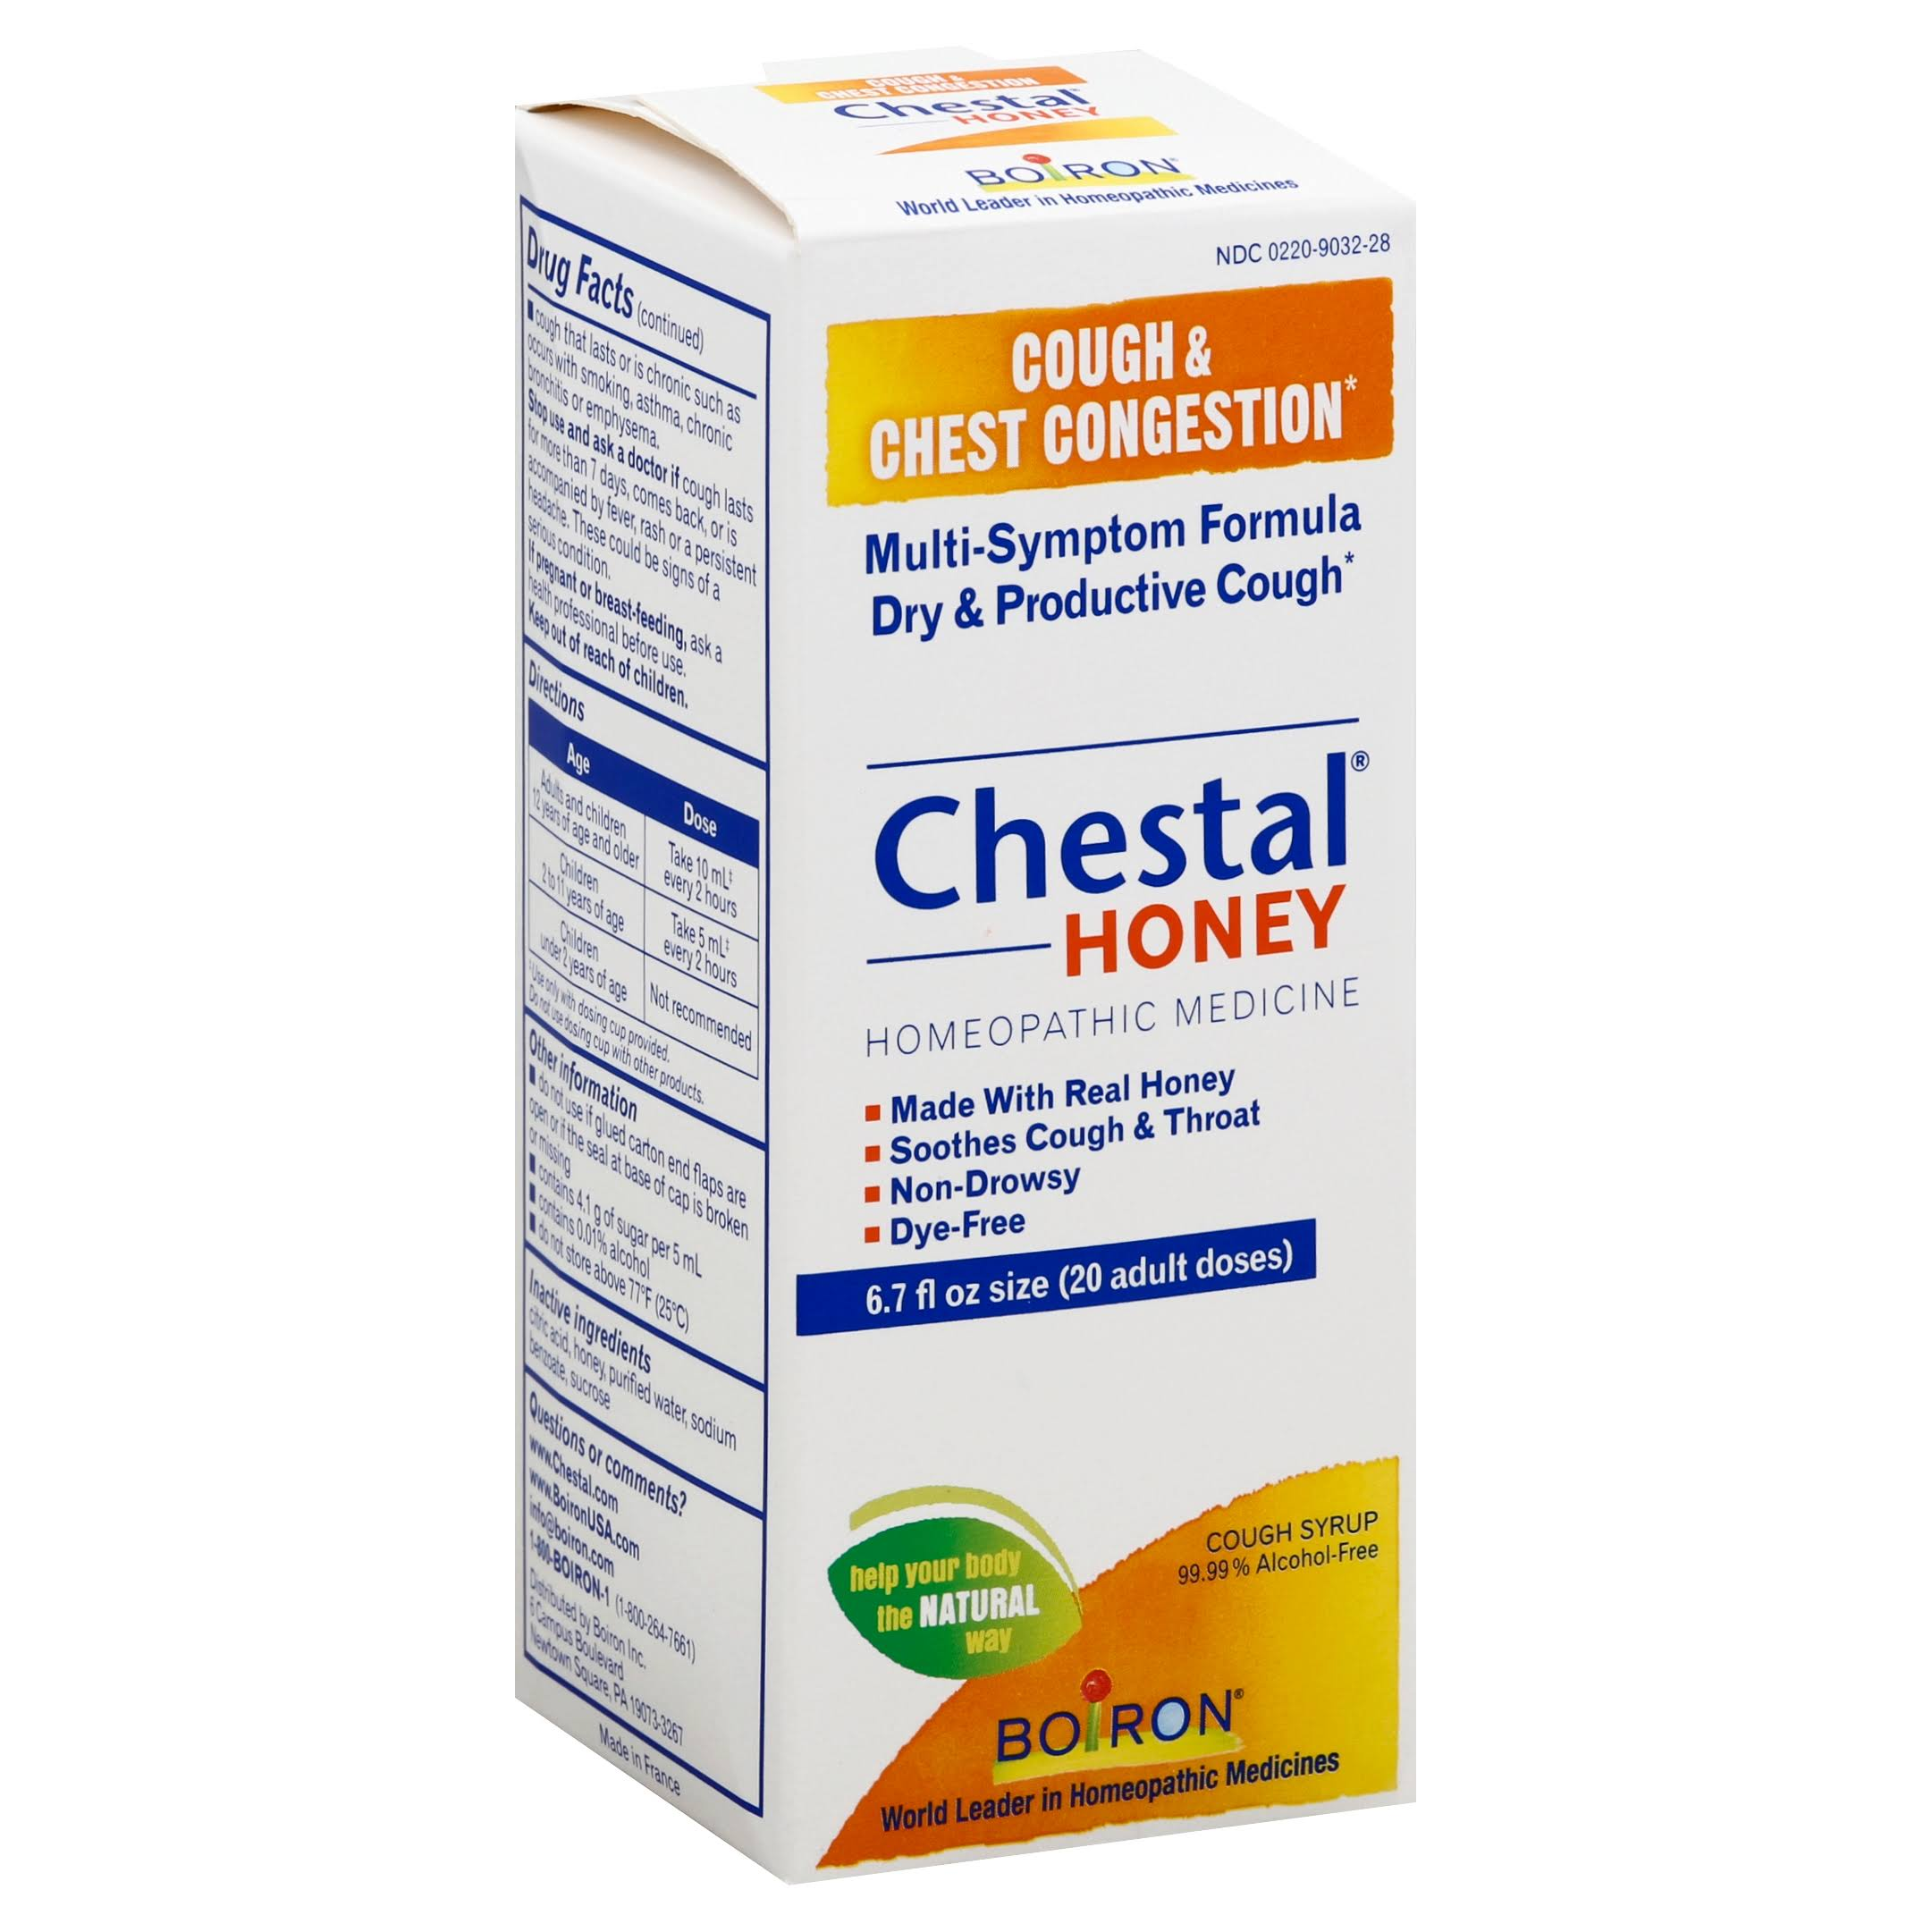 Boiron Chestal Honey Homeopathic Medicine Cough Syrup - 6.7oz